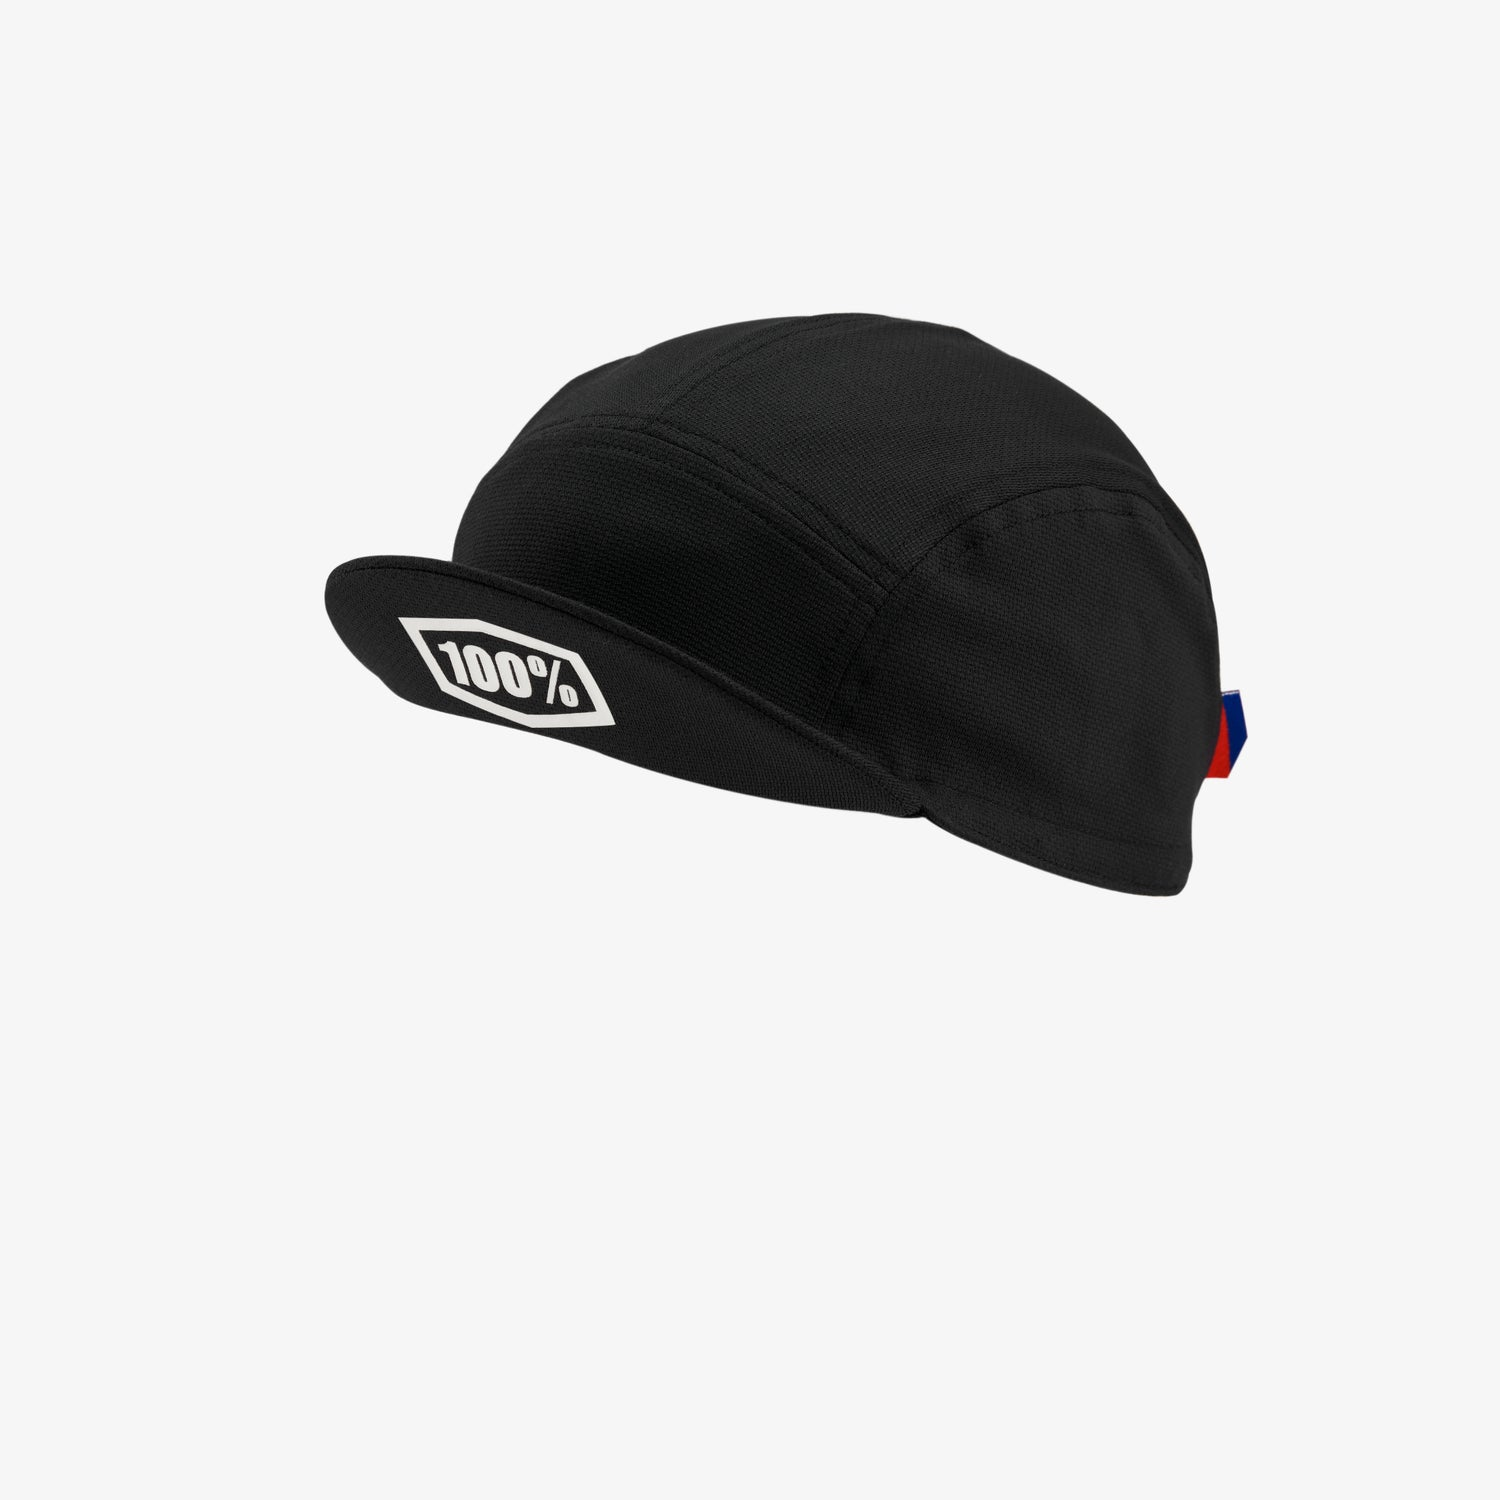 EXCEEDA Road Cap - Solid Black